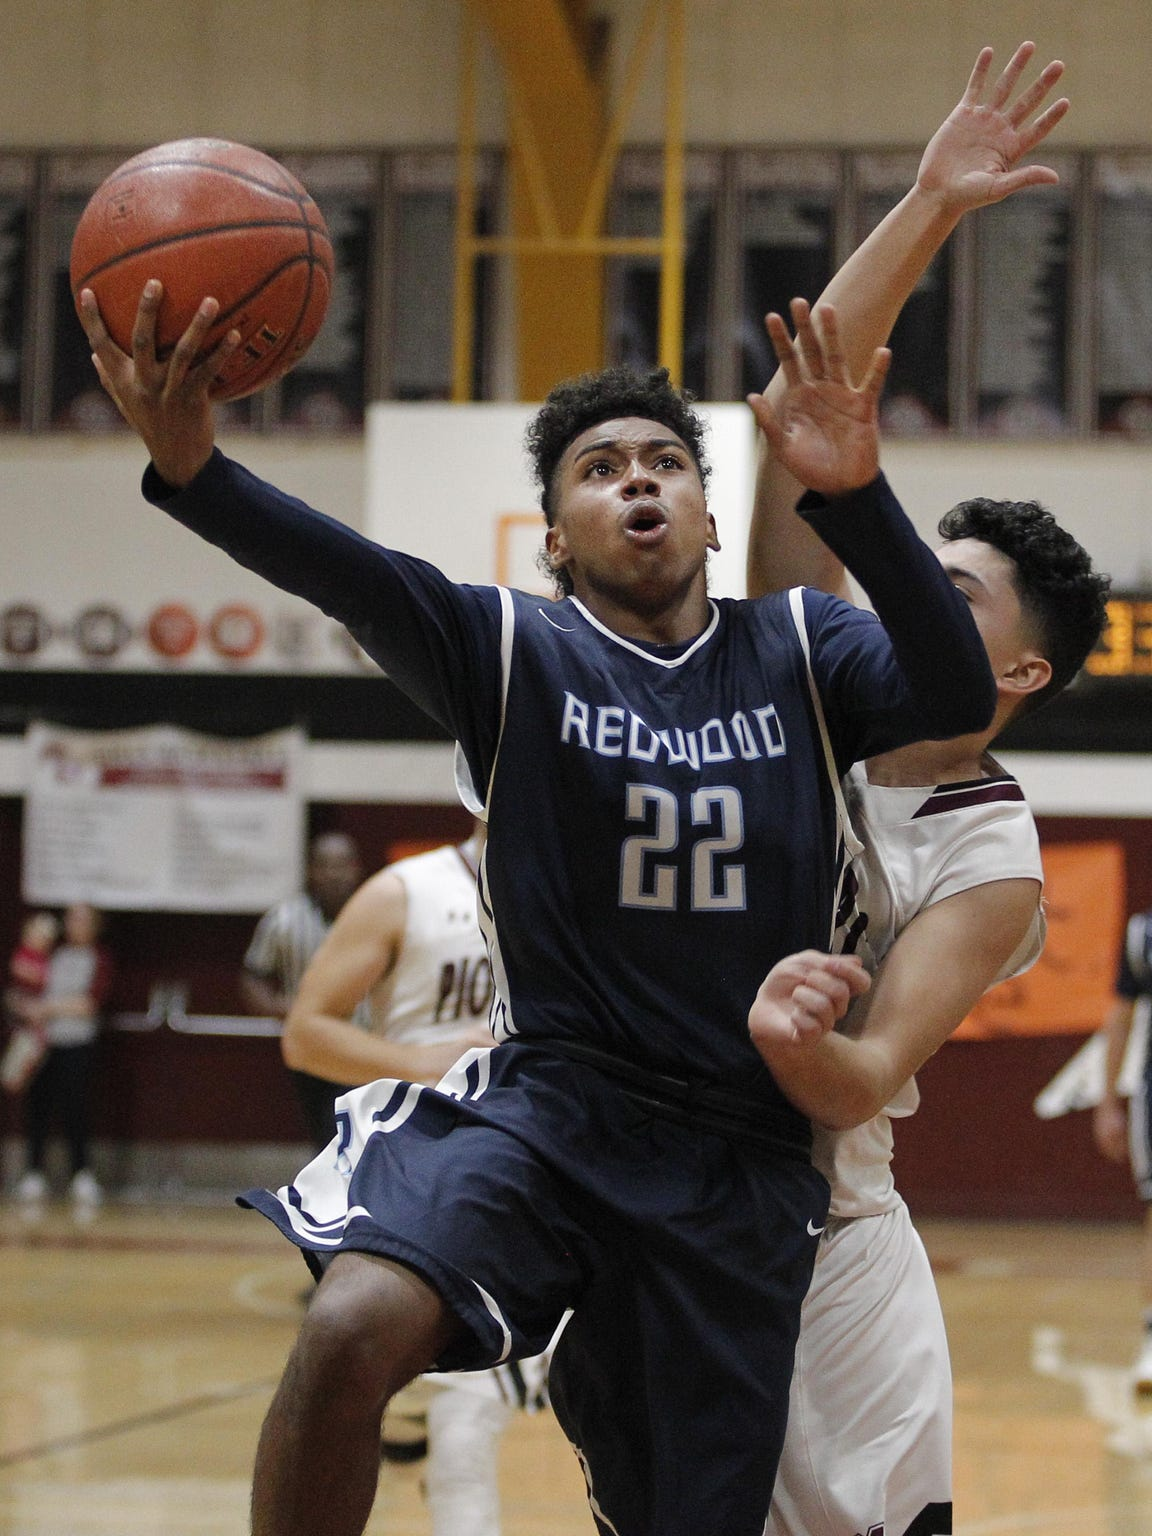 Redwood's Kobe Garner goes in for a layup against a